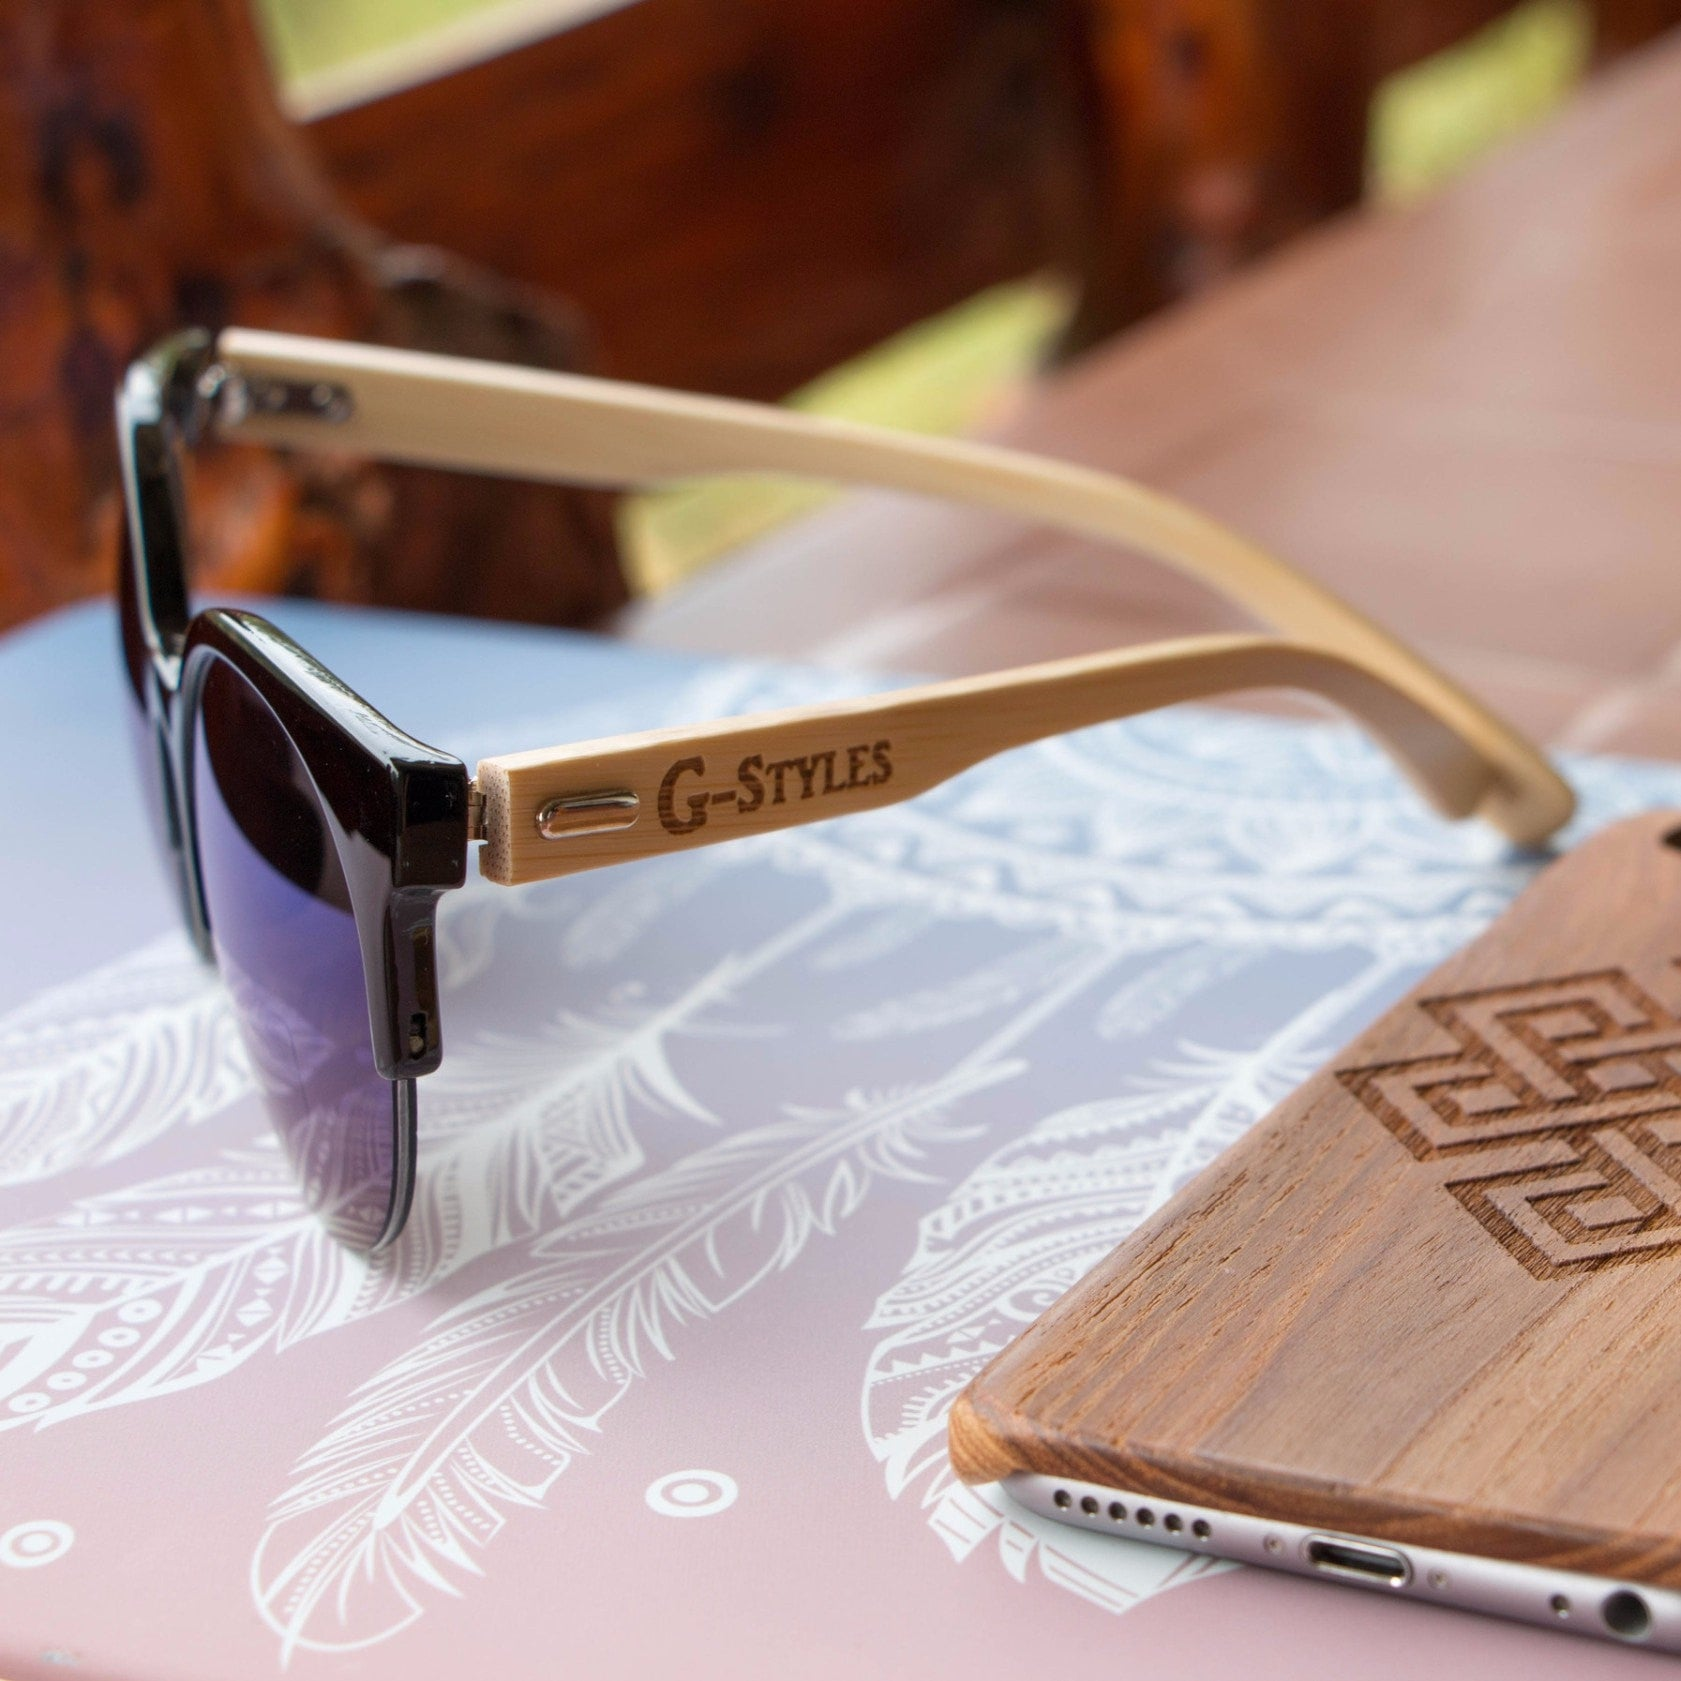 Korean Fashion - Shoes and Clothing - Urban Wild Bamboo Sunglasses - Sunglasses -  - Gangnam Styles - 3